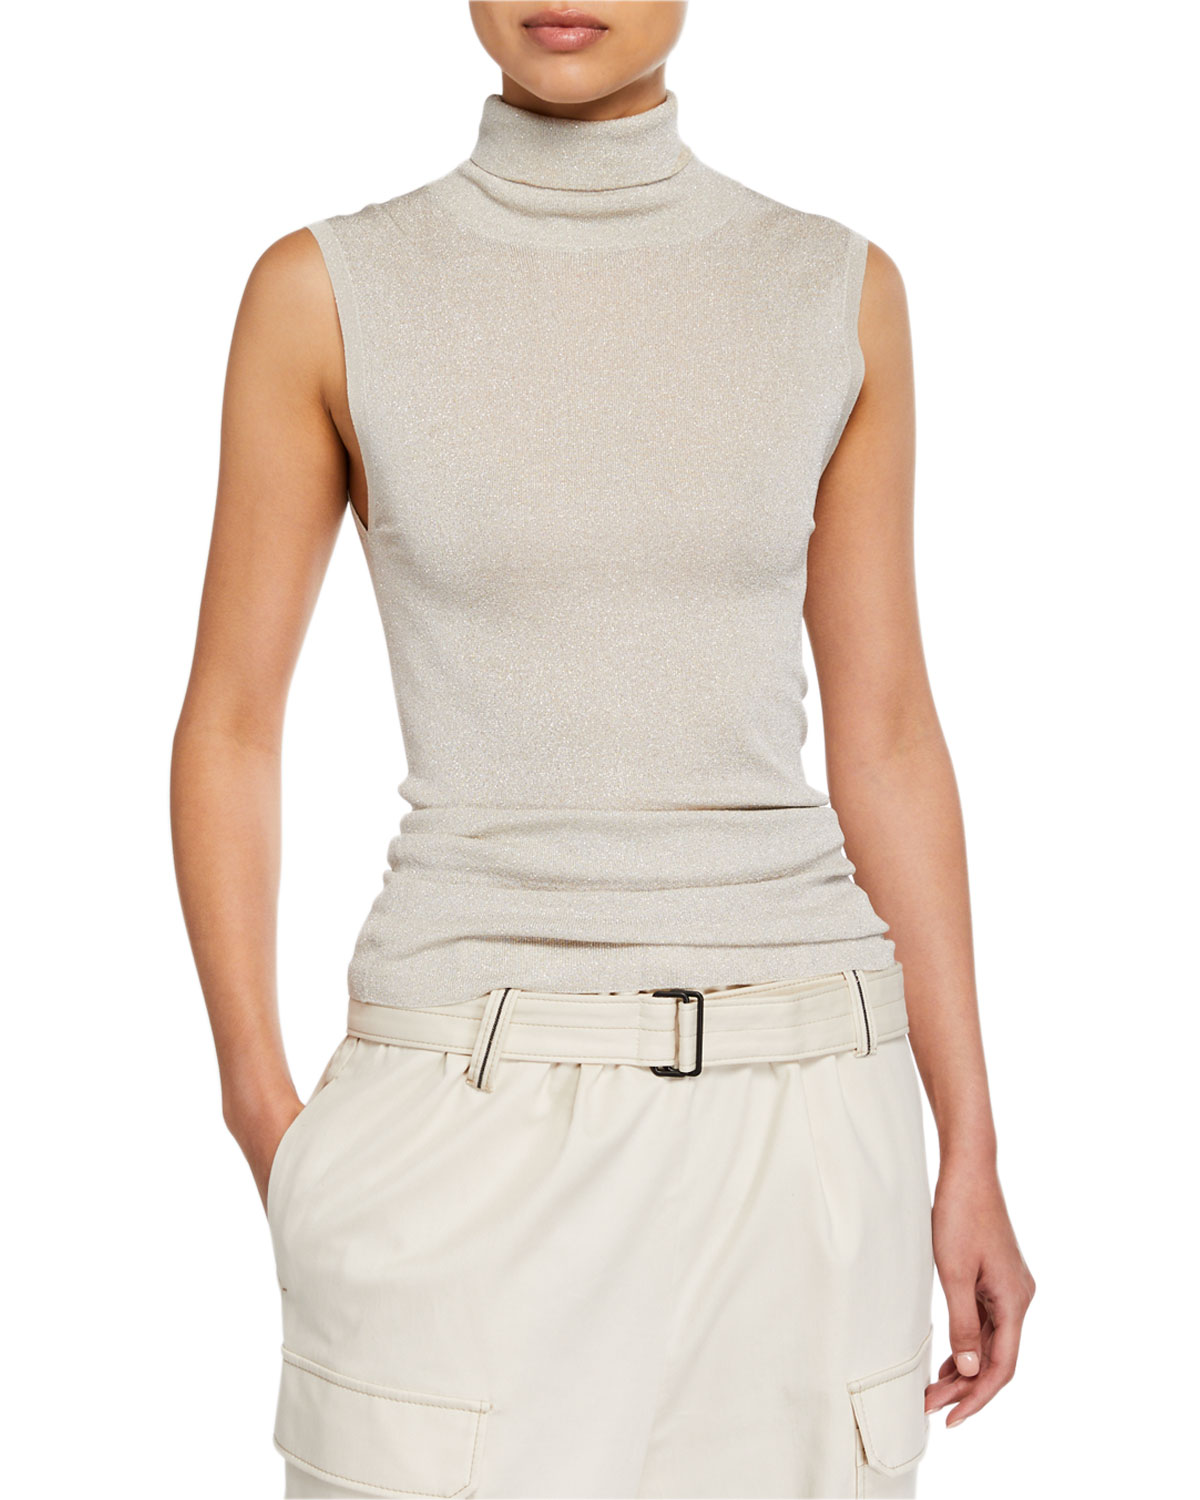 92db3afb23 Shimmer Sleeveless Turtleneck Top in White